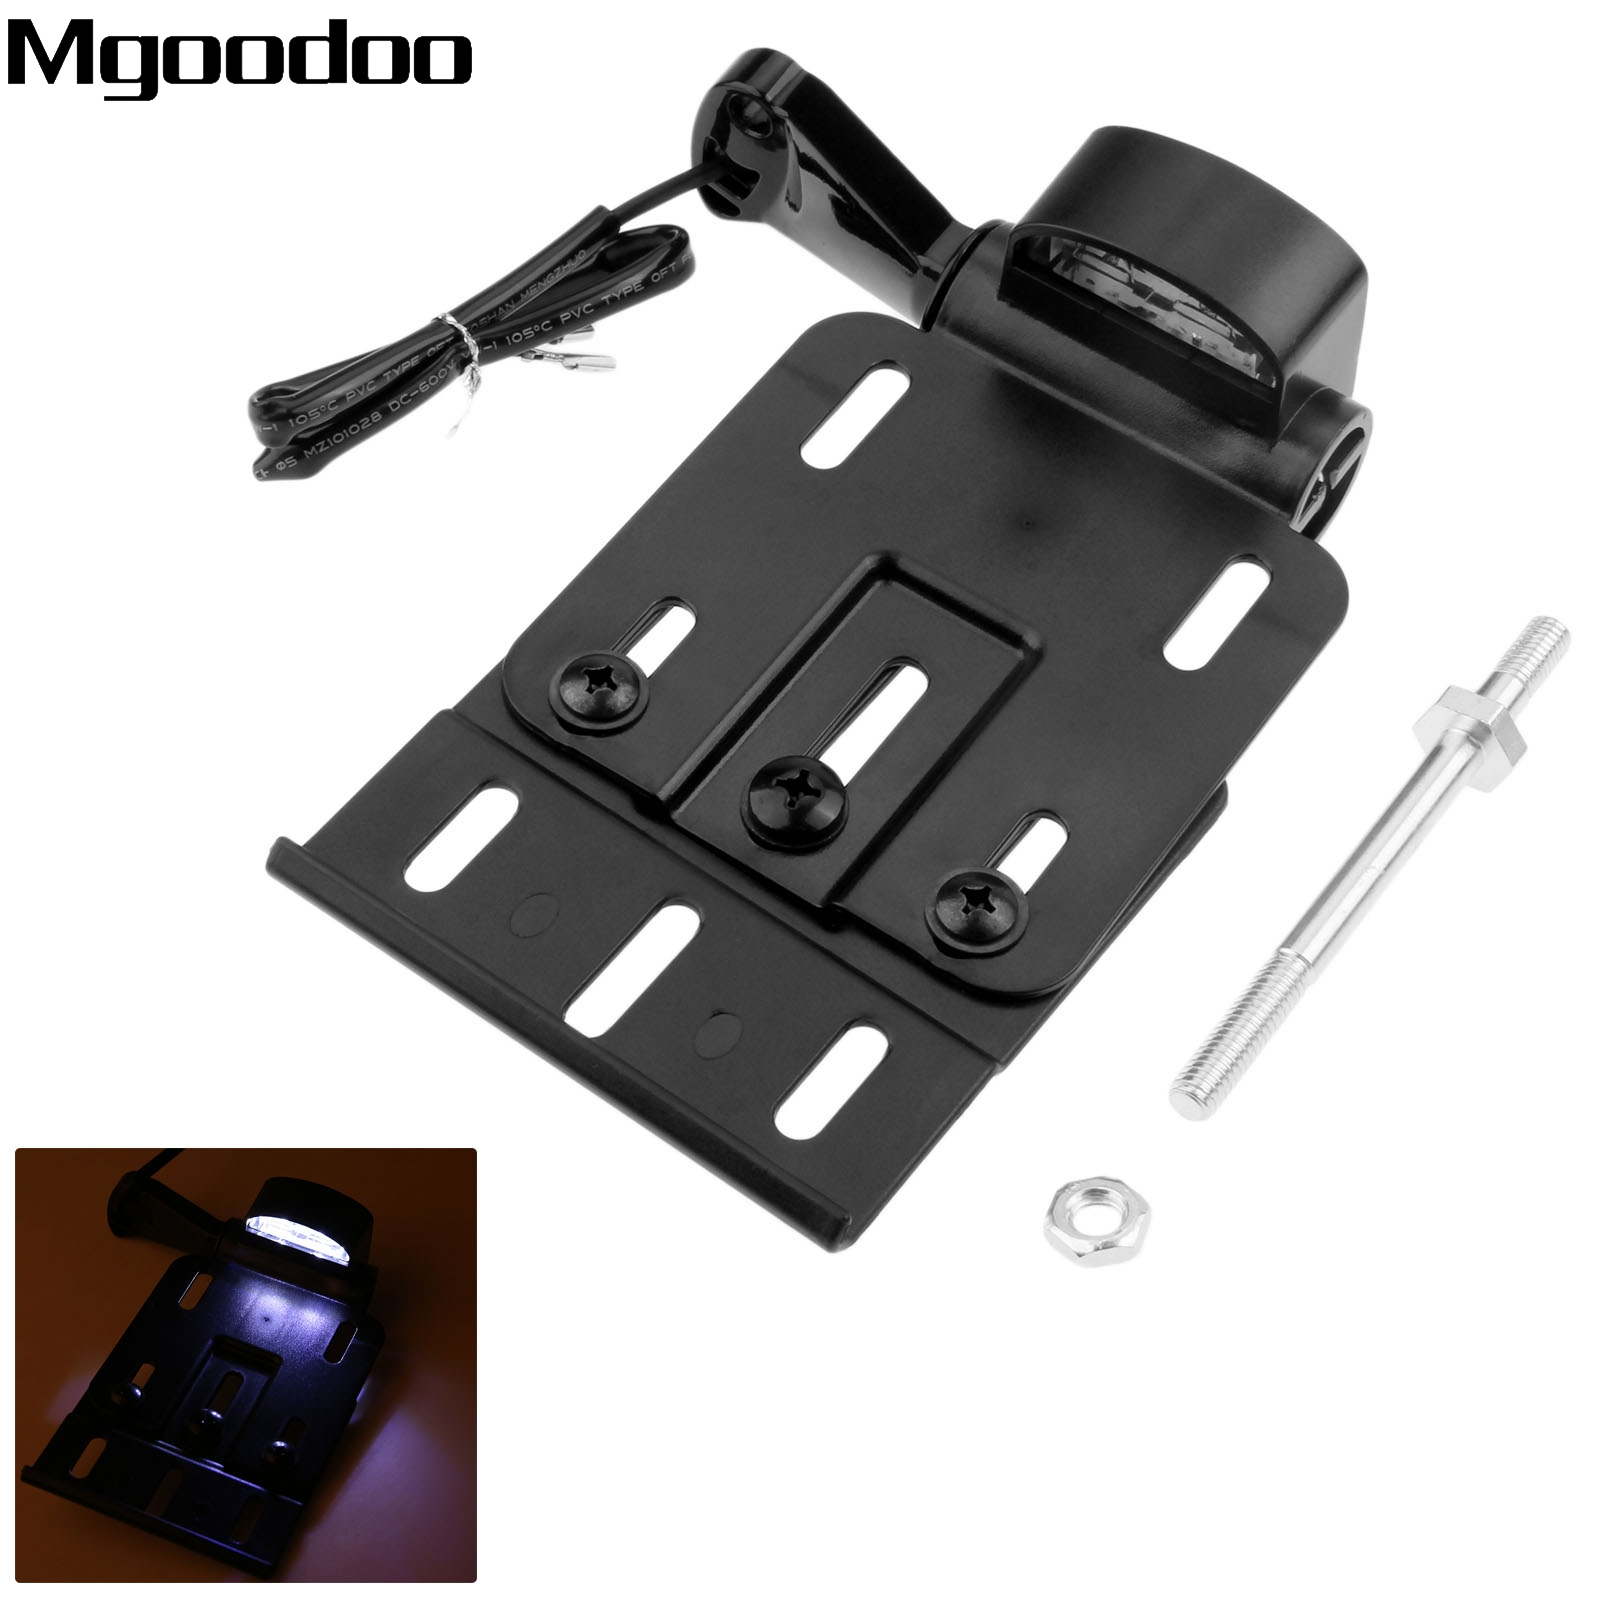 Mgoodoo Motorcycle Folding Side Mount LED Light License Plate Frame Cover Holder Bracket For Harley Sportster 883 1200 2004-2016 mens watches women watch hot sale delicate casual noble men motion form stainless steel sport quartz hour wrist analog watch 4